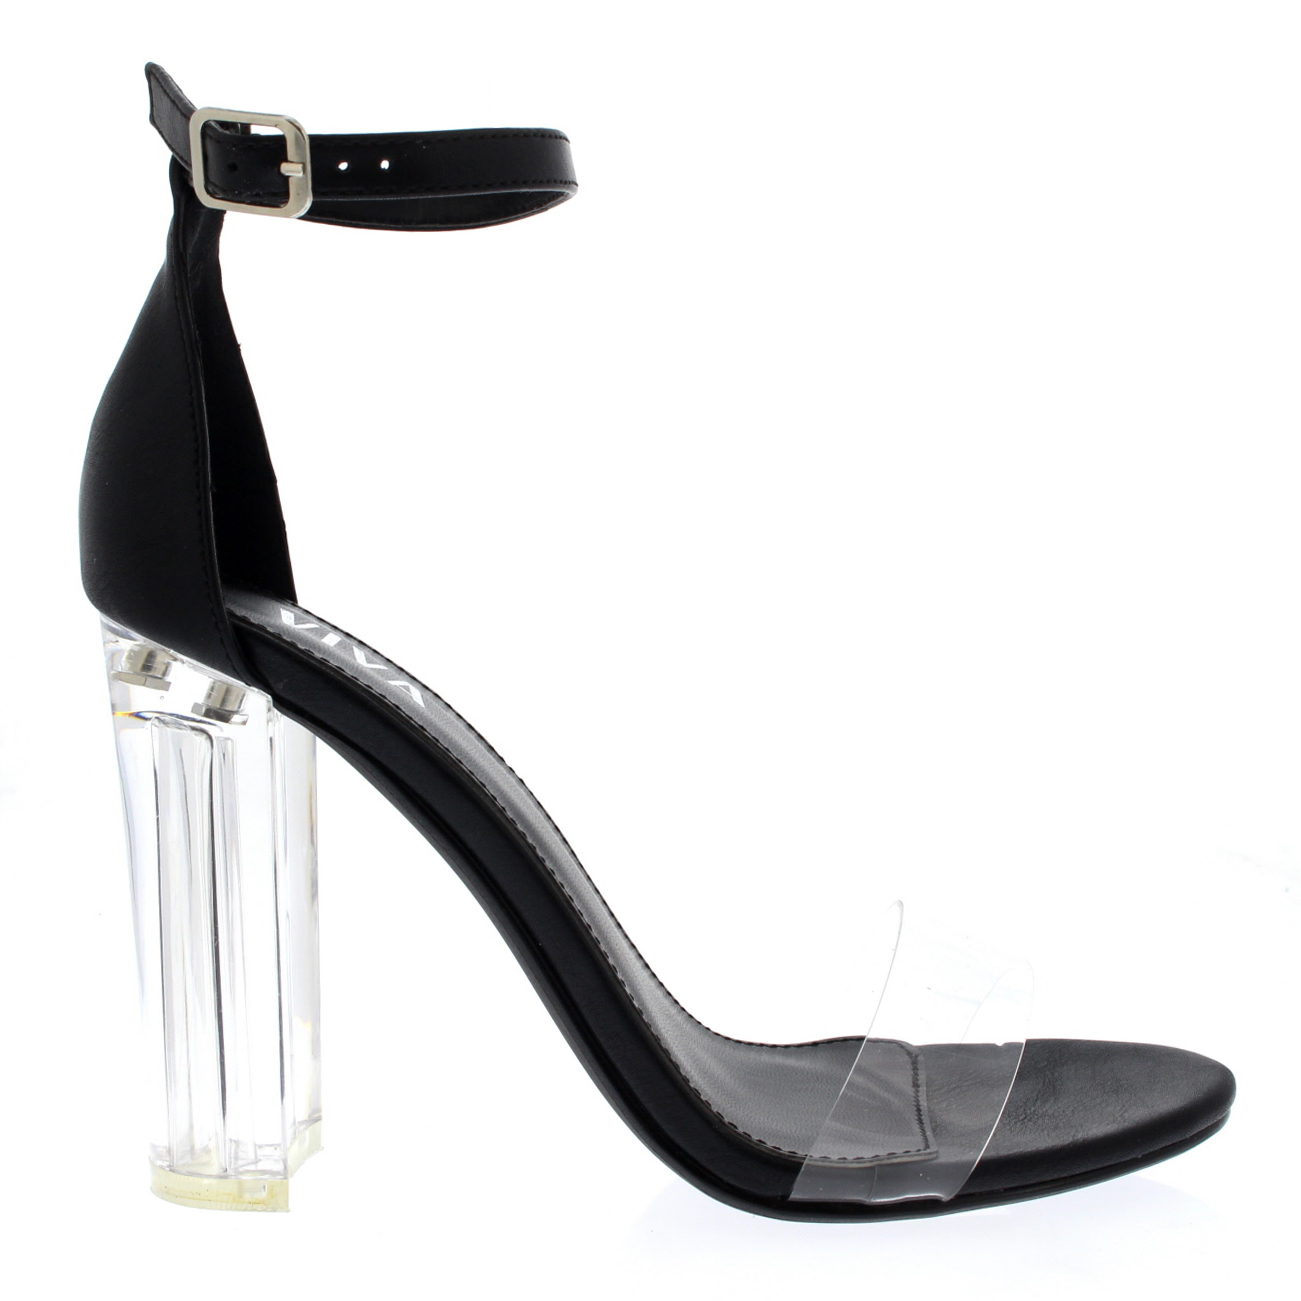 e665f42a6cf Details about Womens Party Evening Ankle Strap Shoes High Heel Chic Glass  Heel Sandals US 5-10